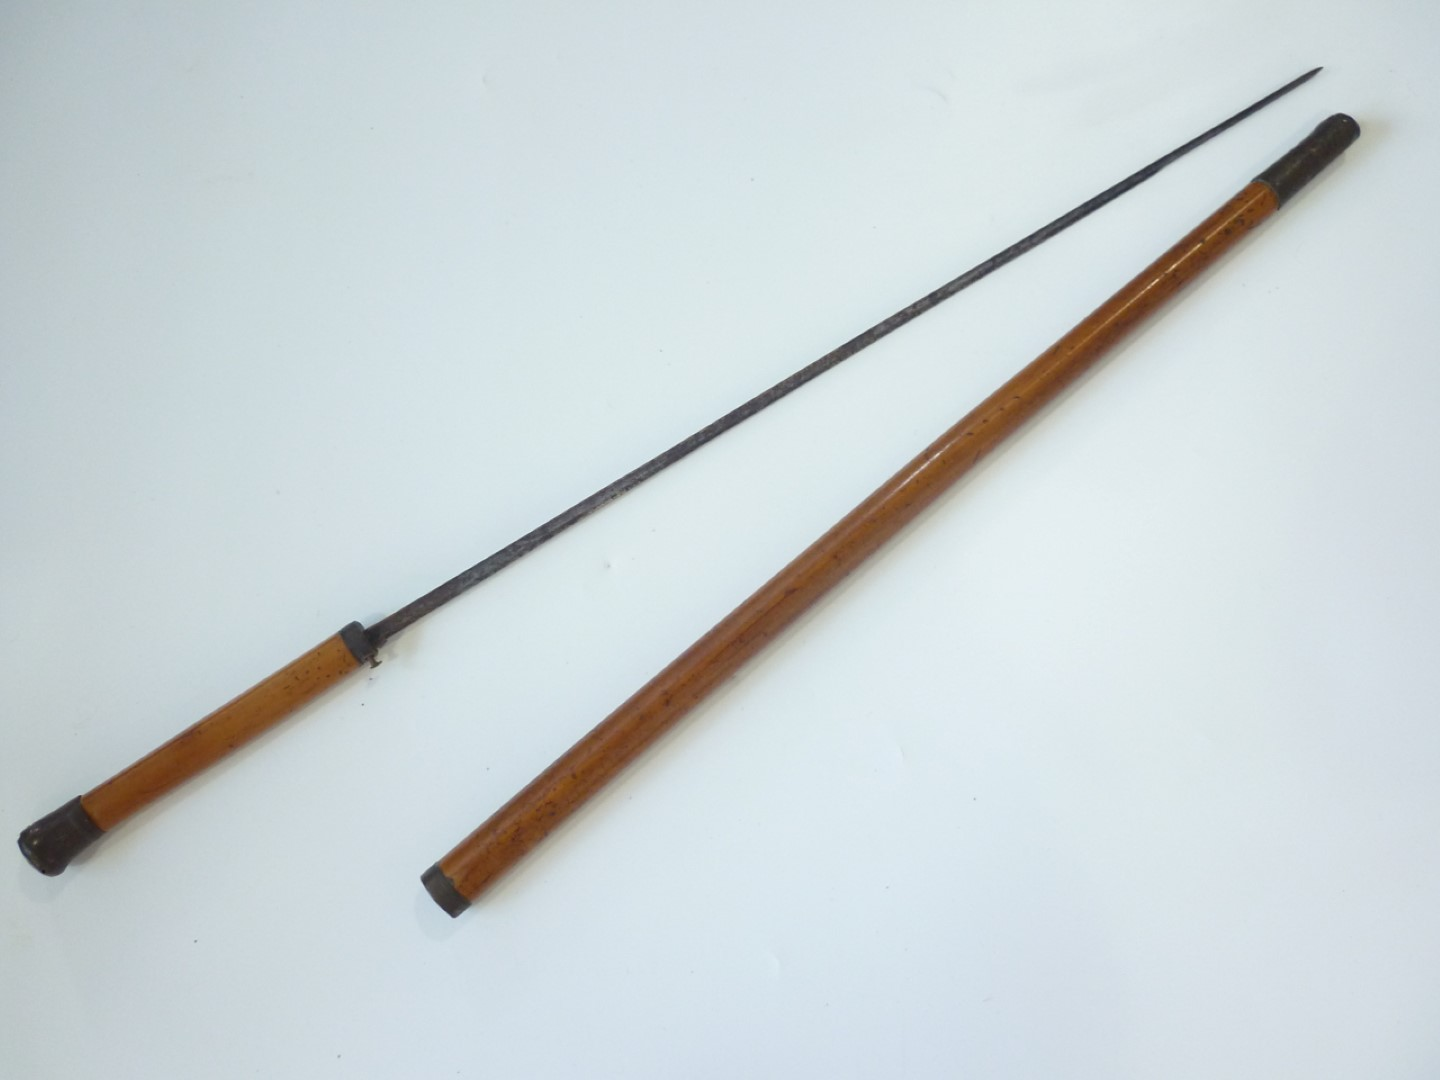 Lot 102 - A 19th Century sword stick, of malacca cane with single-fullered blade, 89 cm, blade 69 cm